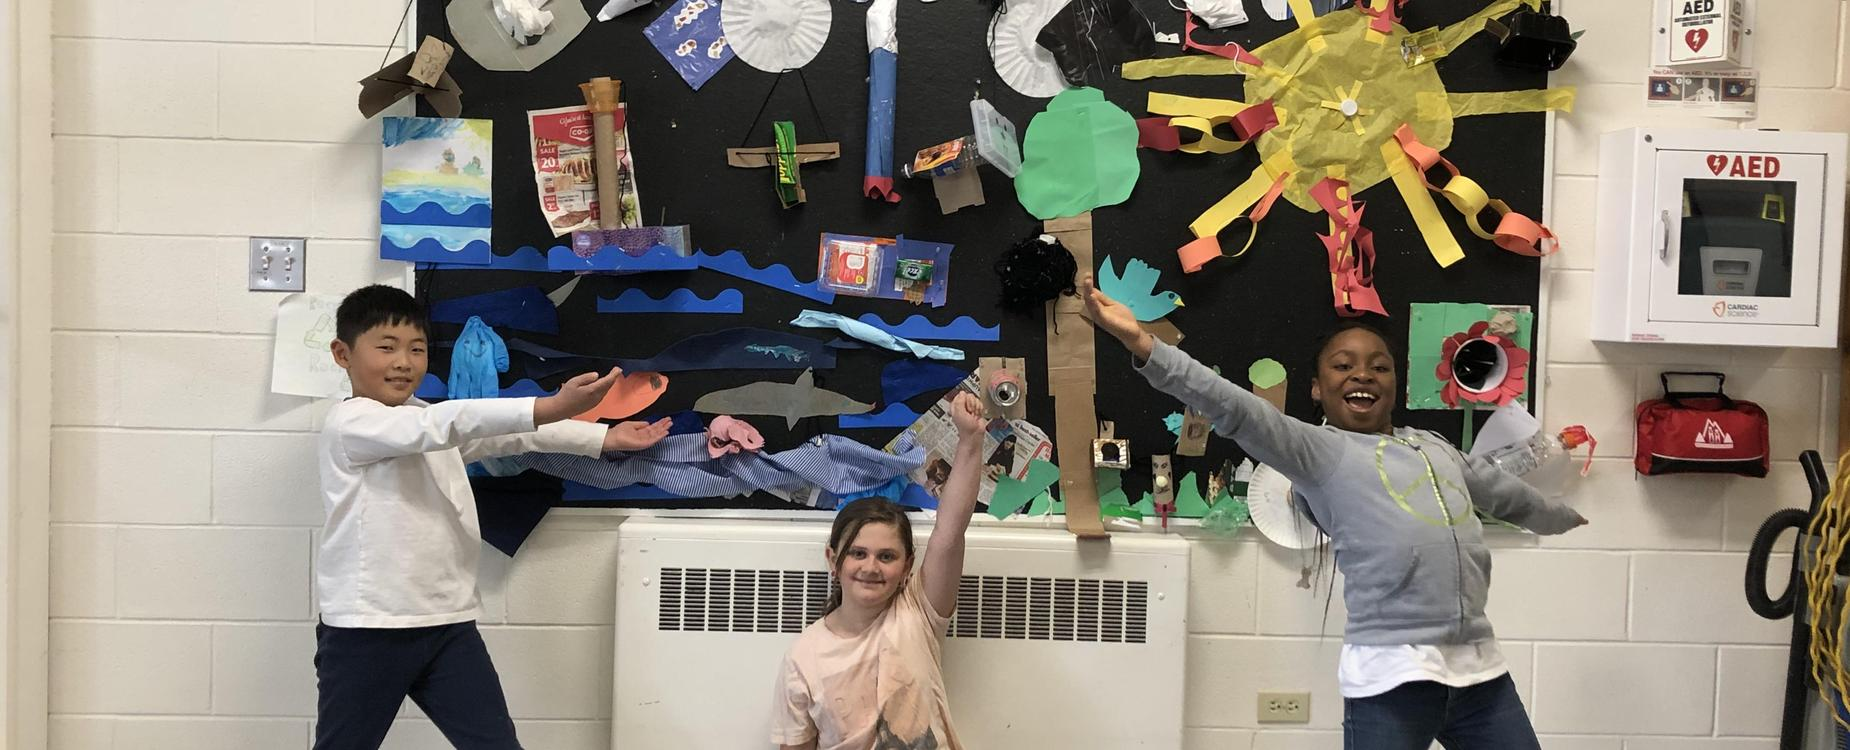 A billboard filled with recycled items turned into art.  It's a landscape with a sun, a sea with flowers and clouds.  3 students are posing in front.